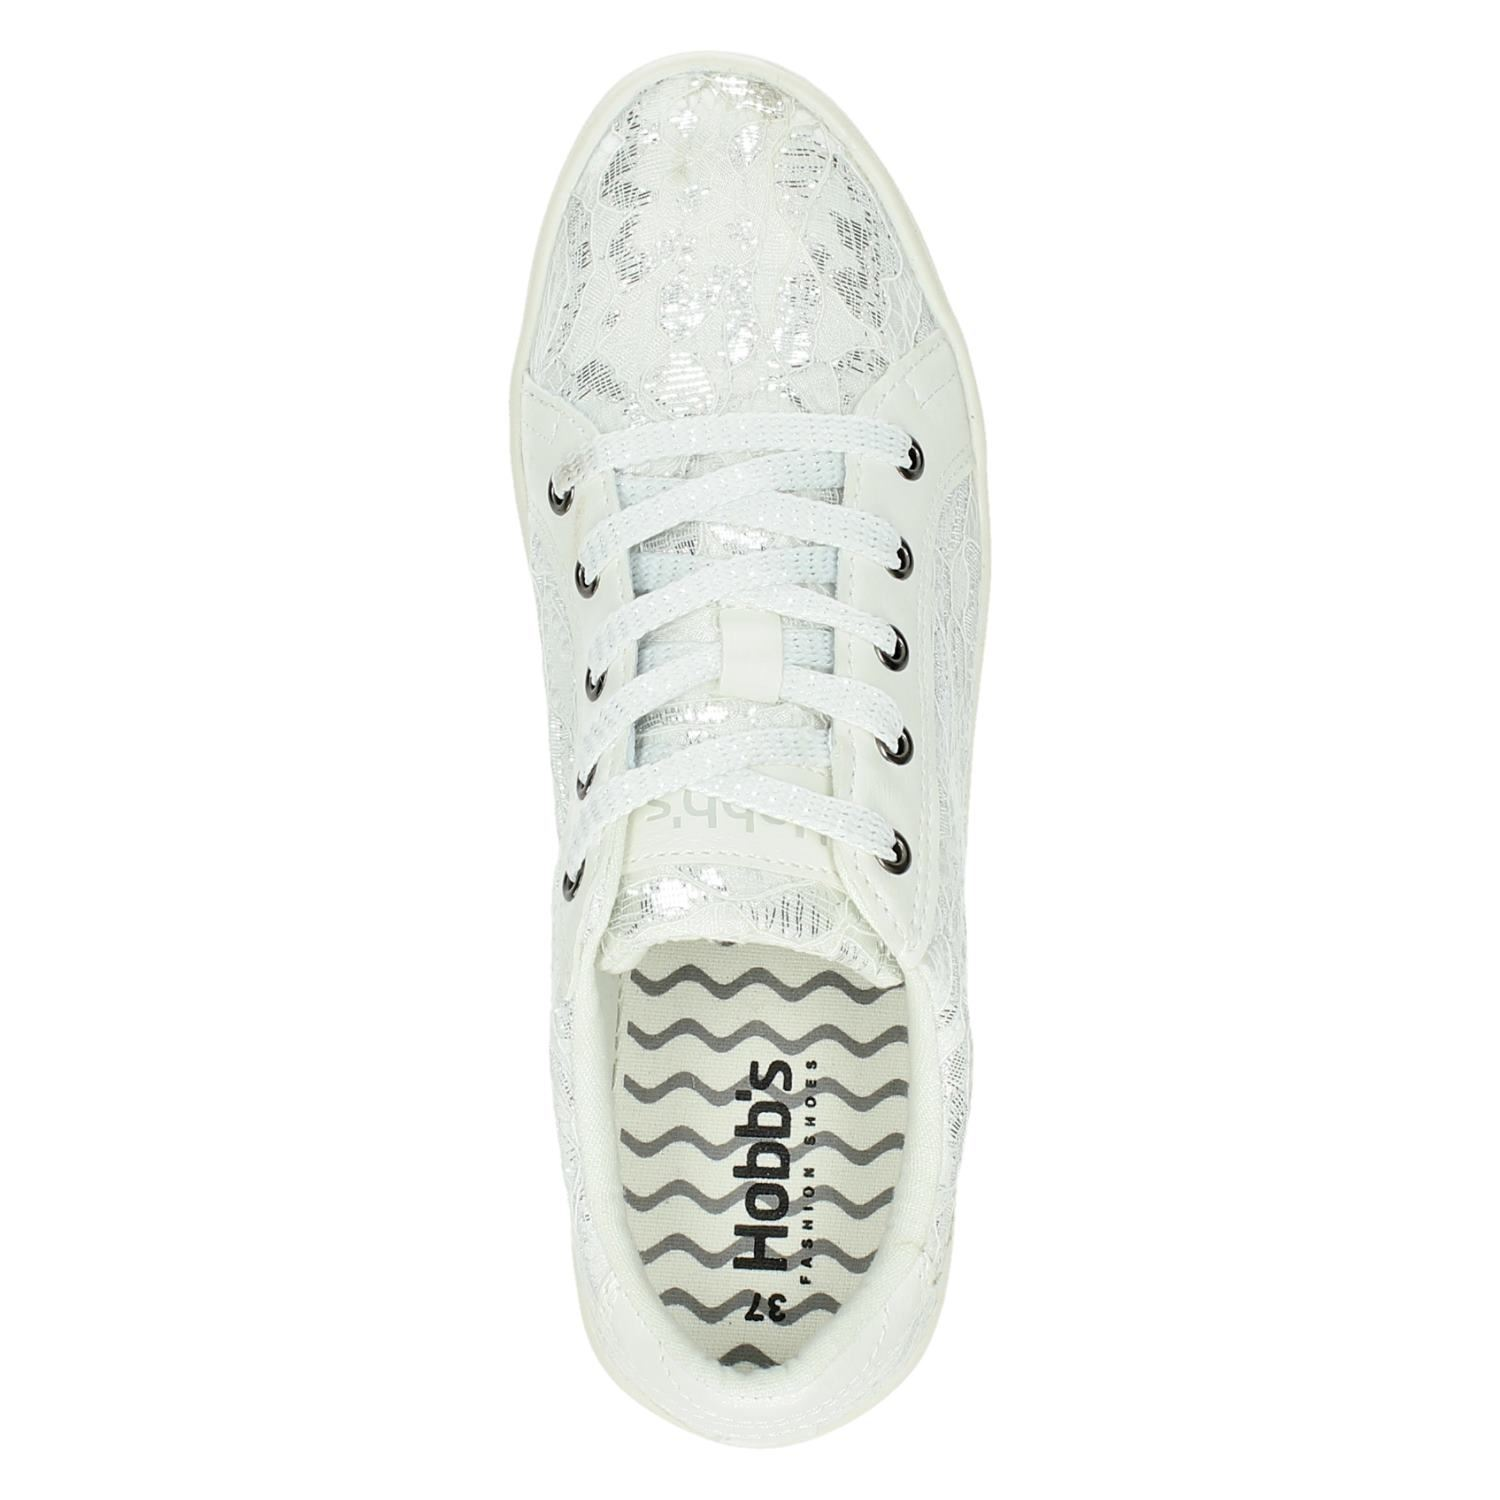 Lage Sneakers Dames Hobb's Wit Hobb's Lage Dames hQrdts